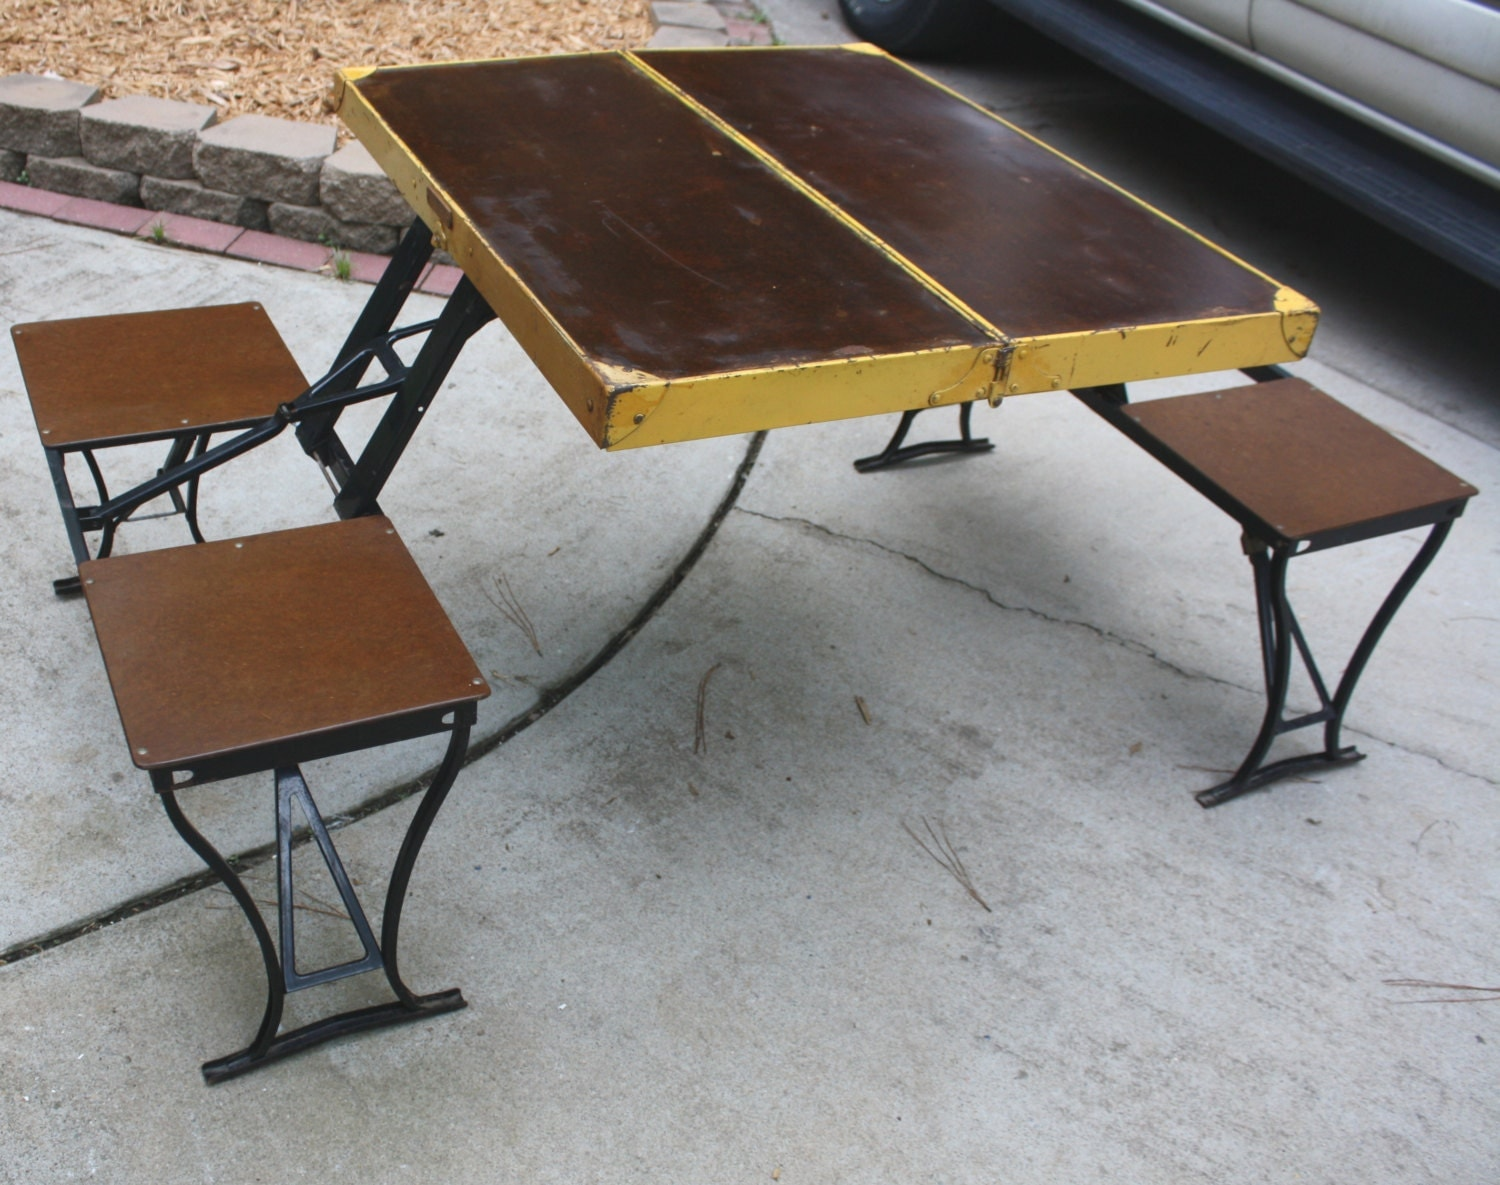 1947 vintage wooden camper camping folding picnic table. Black Bedroom Furniture Sets. Home Design Ideas